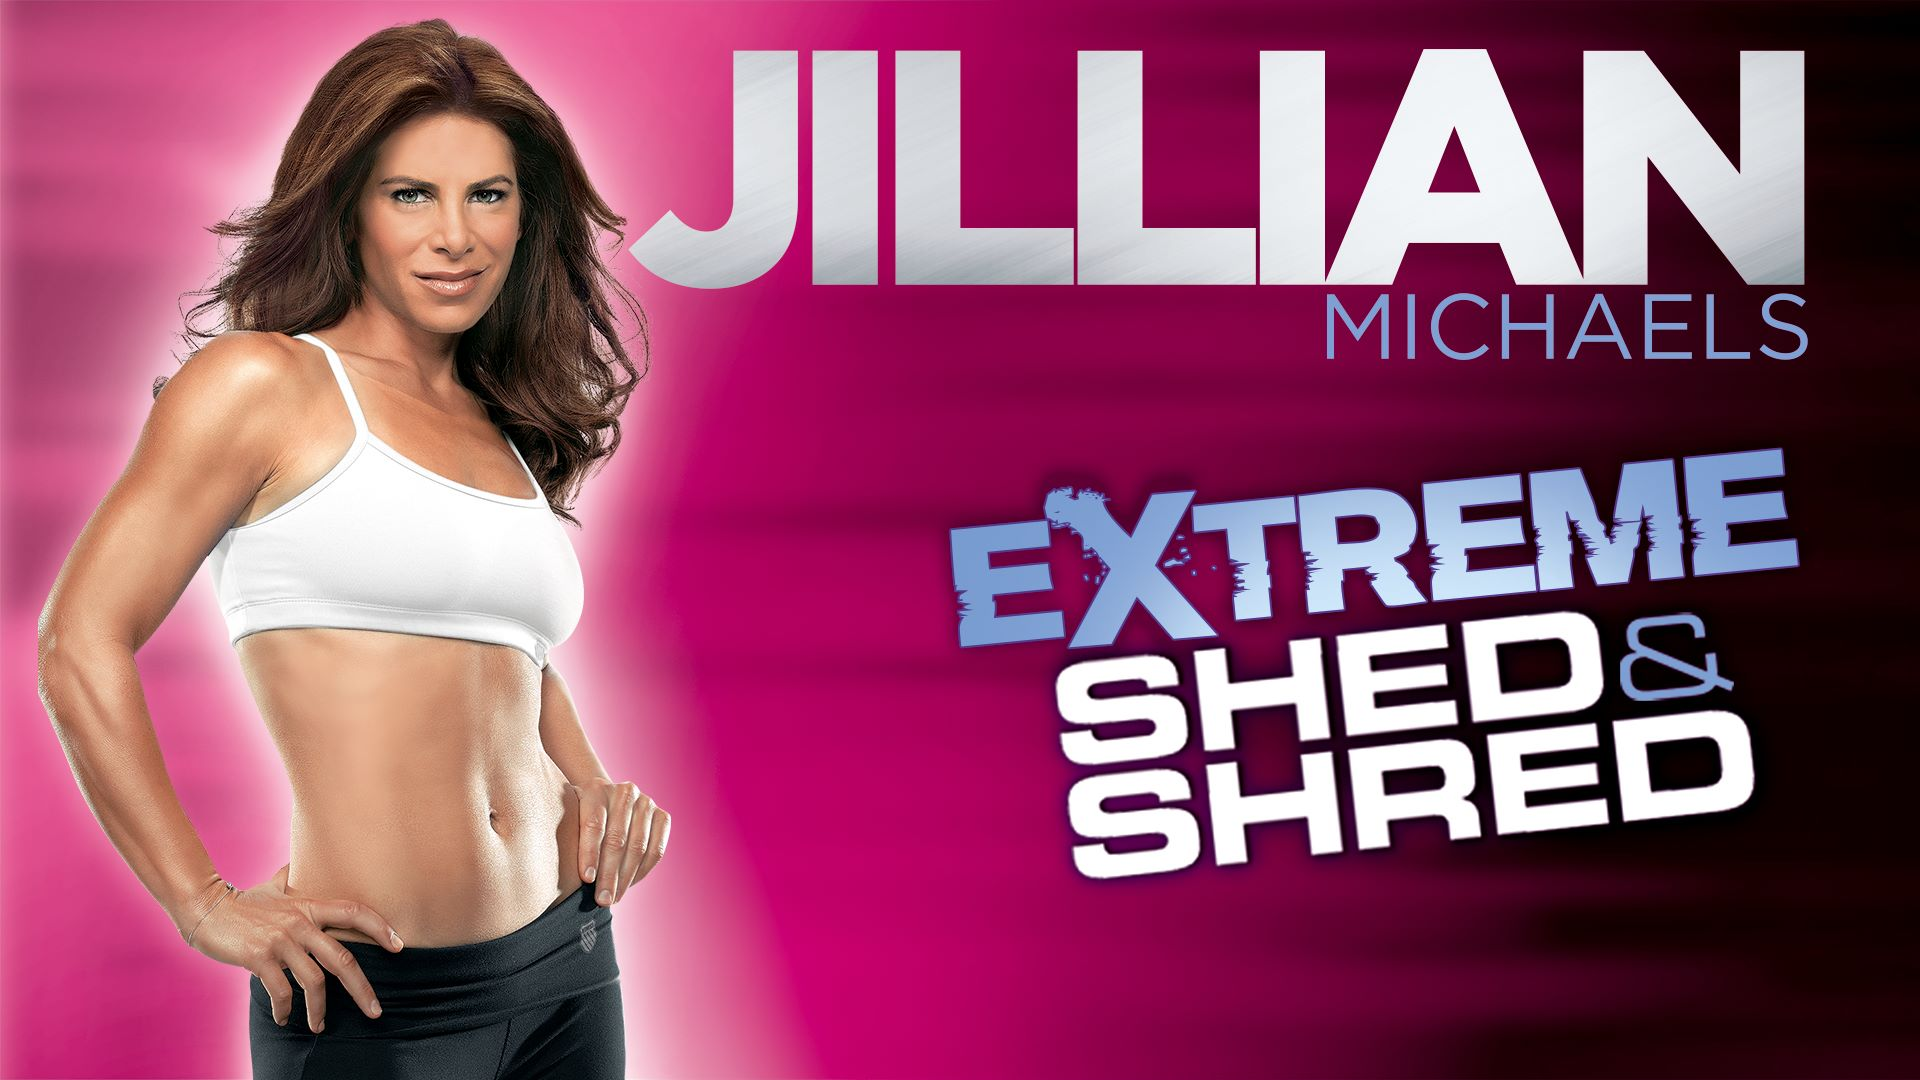 Jillian Michaels Extreme Shed Amp Shred